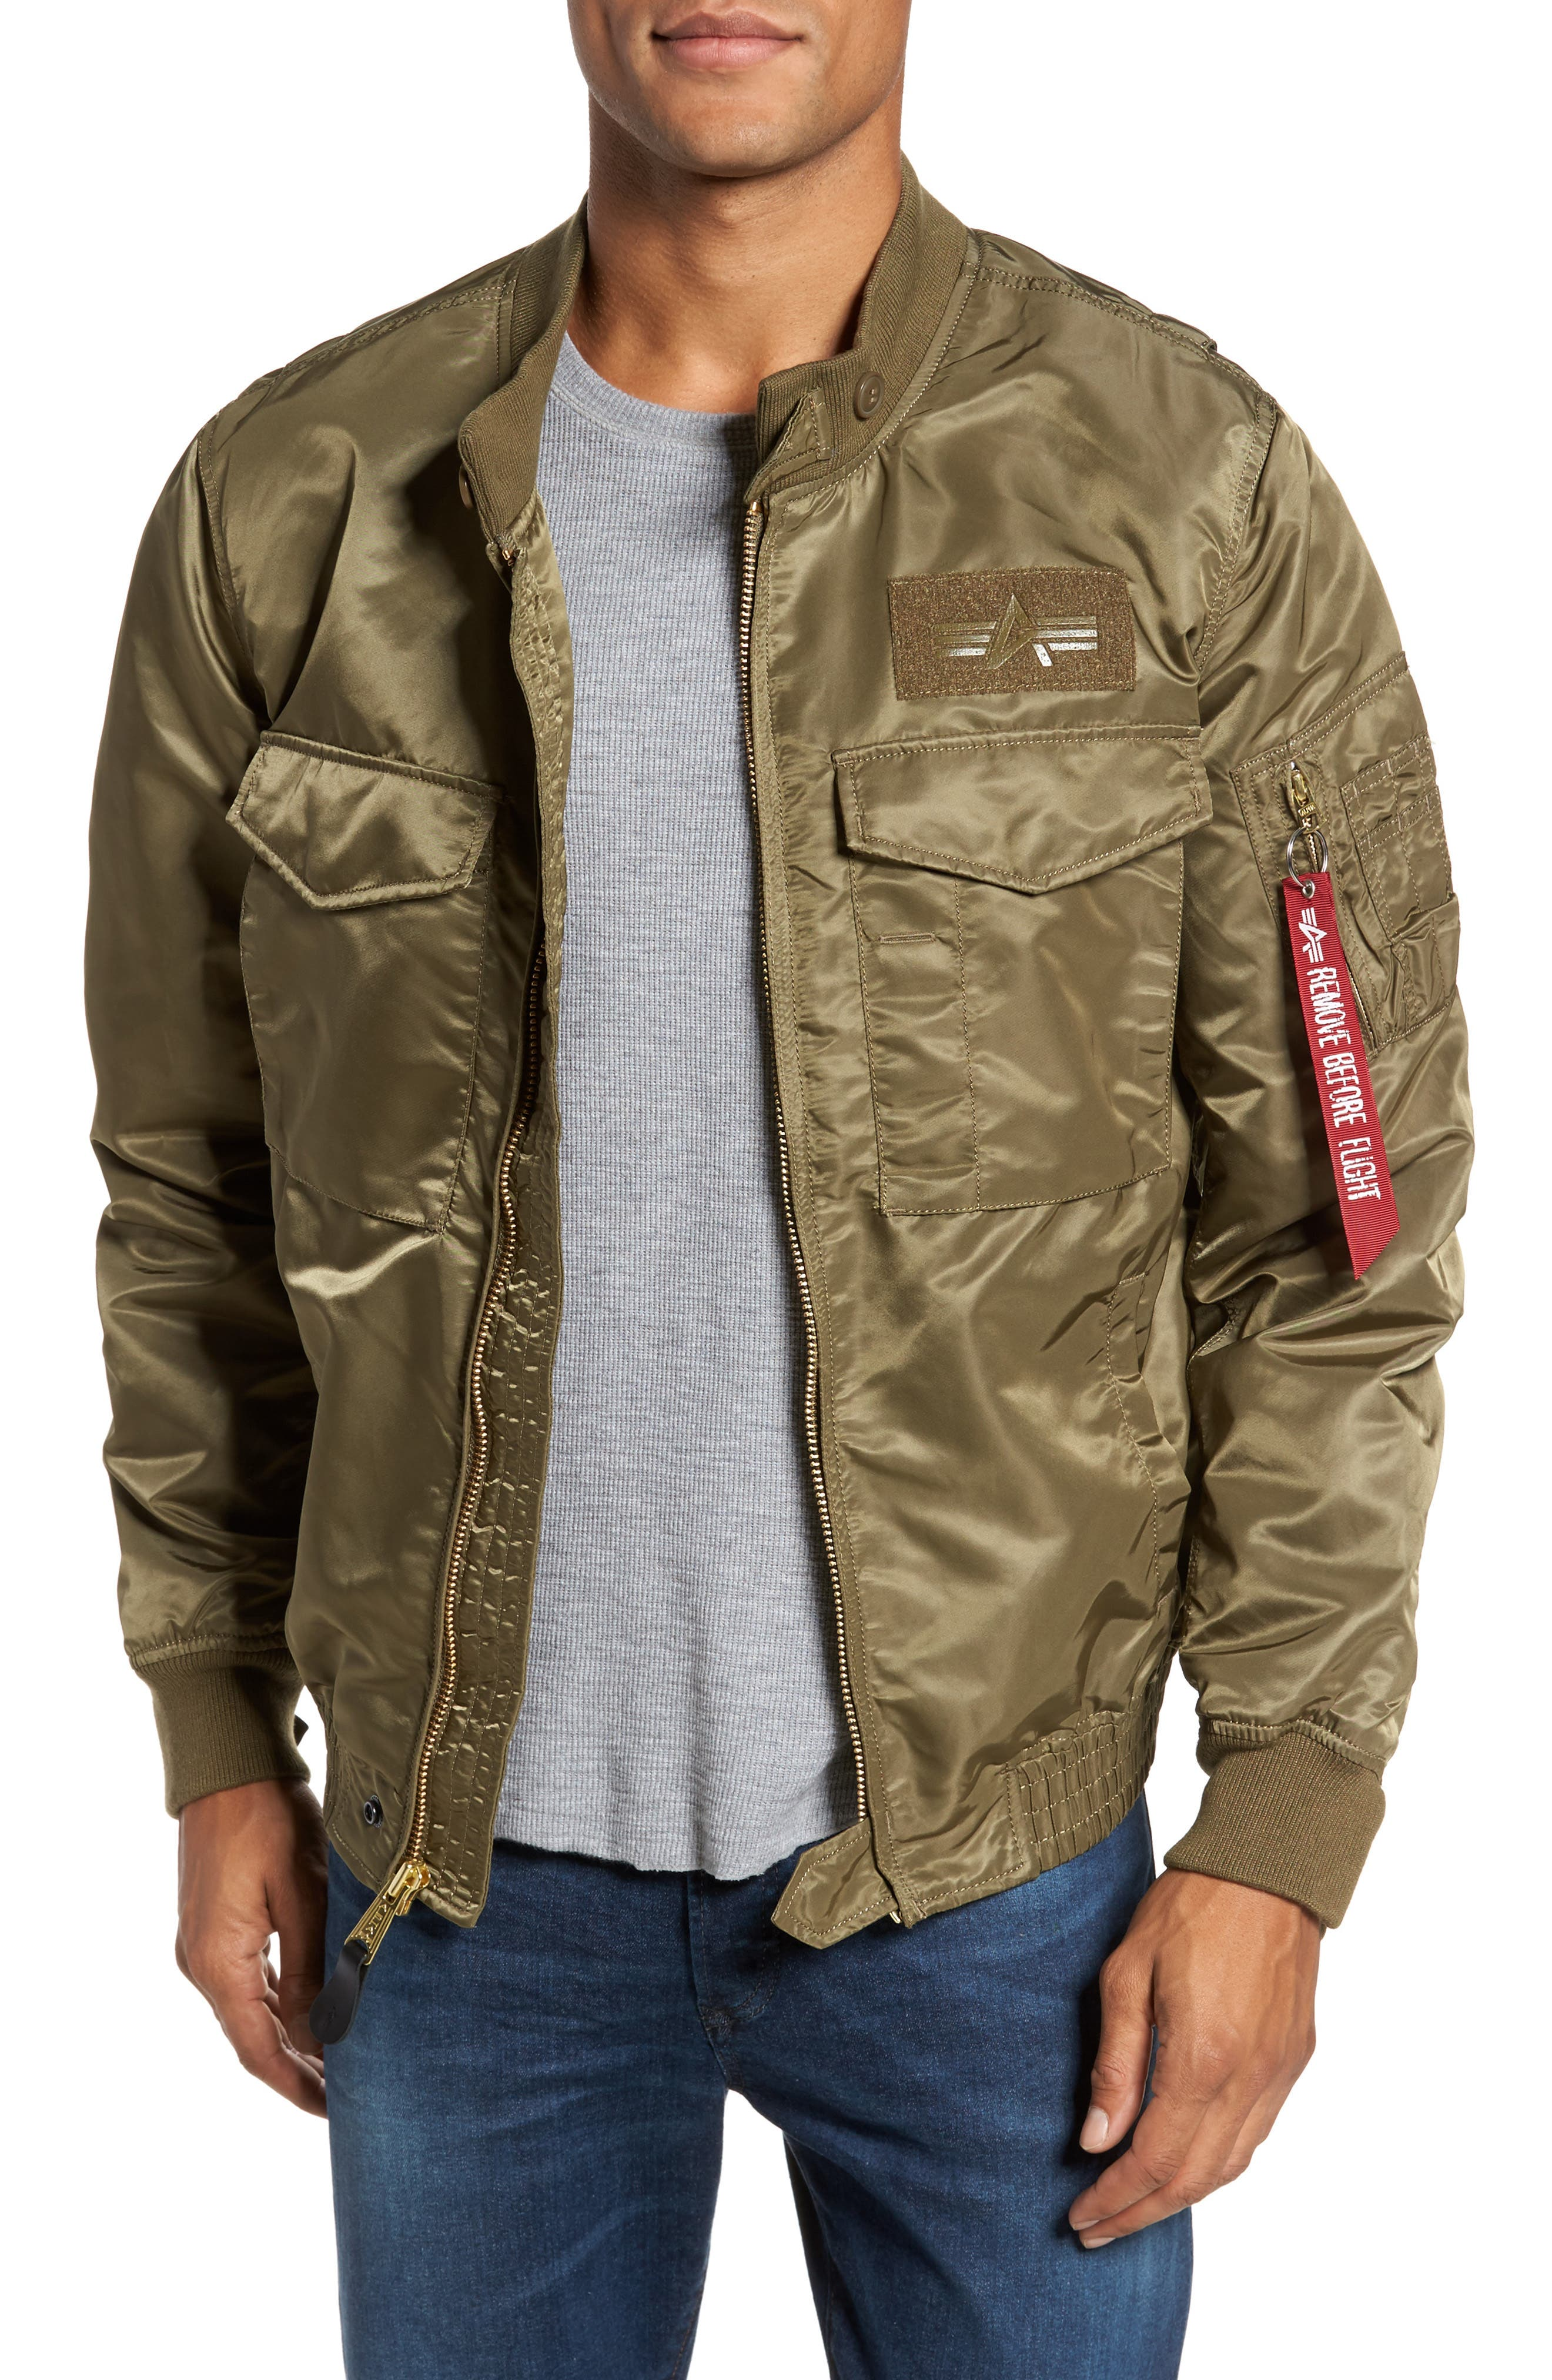 Alternate Image 1 Selected - Alpha Industries Weps Mod Jacket